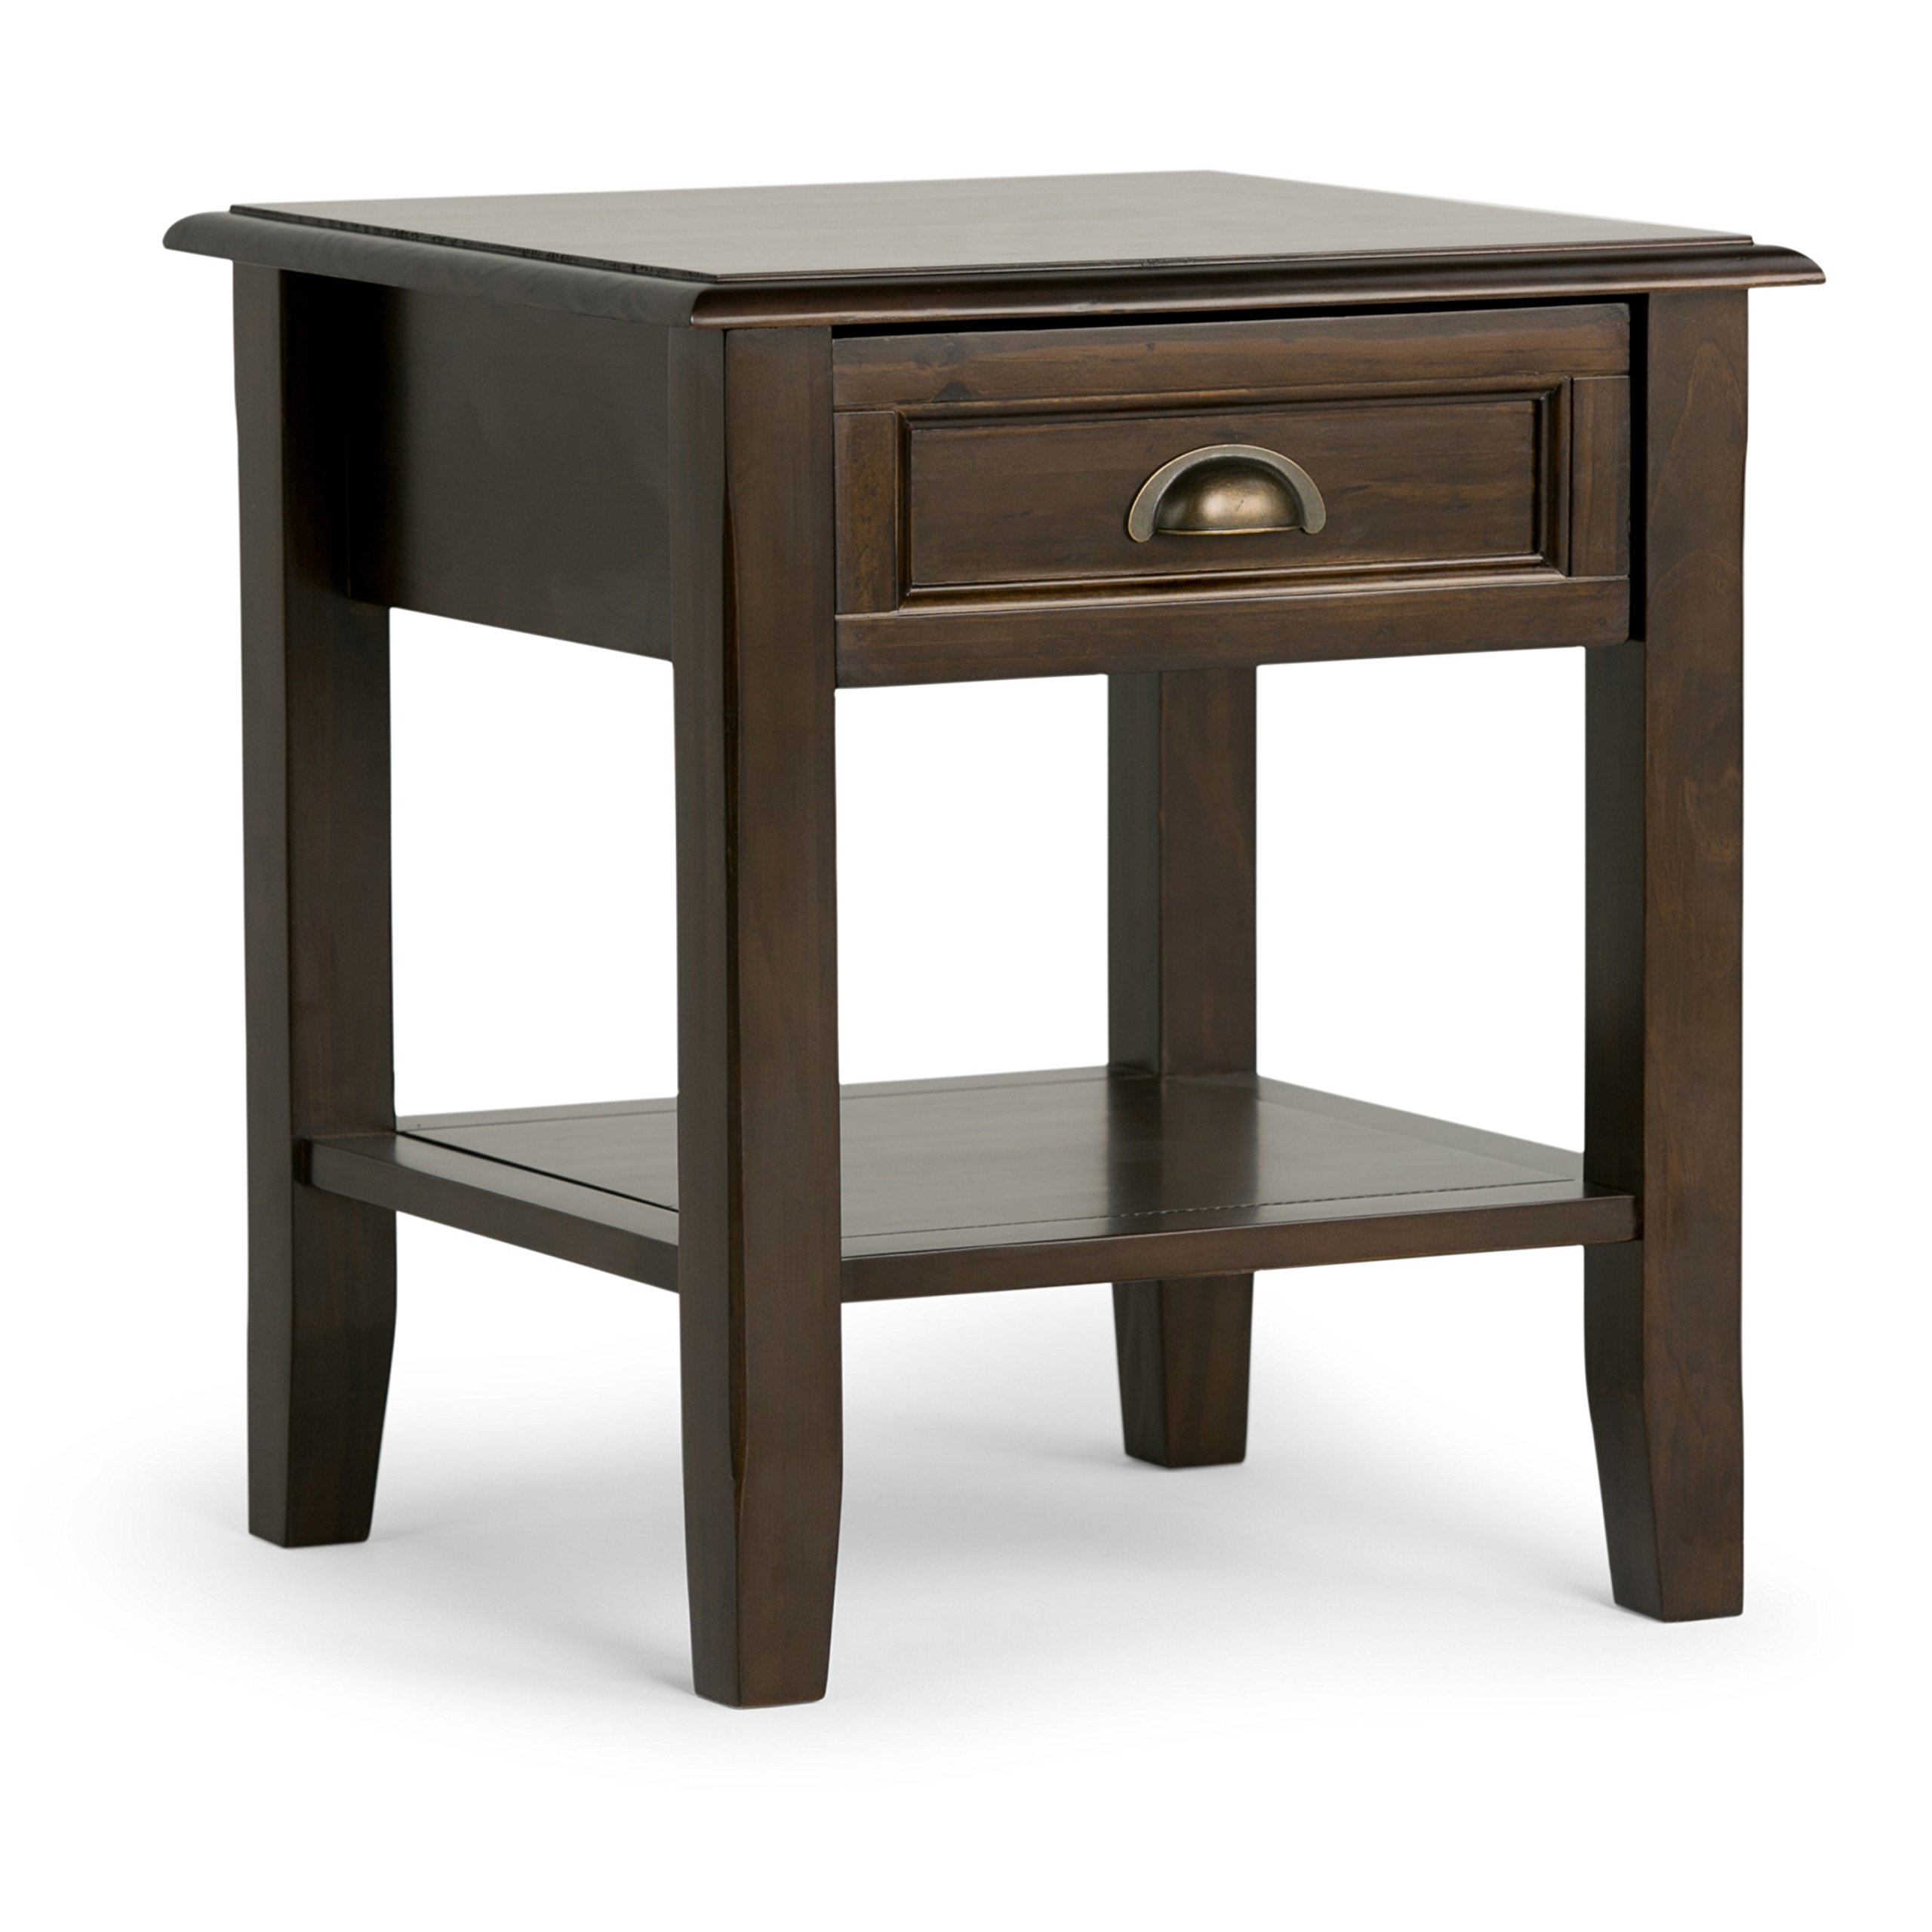 Simpli Home 3AXCBUR-002 Burlington Solid Wood 18 inch wide Square Traditional End Side Table in Espresso Brown by Simpli Home